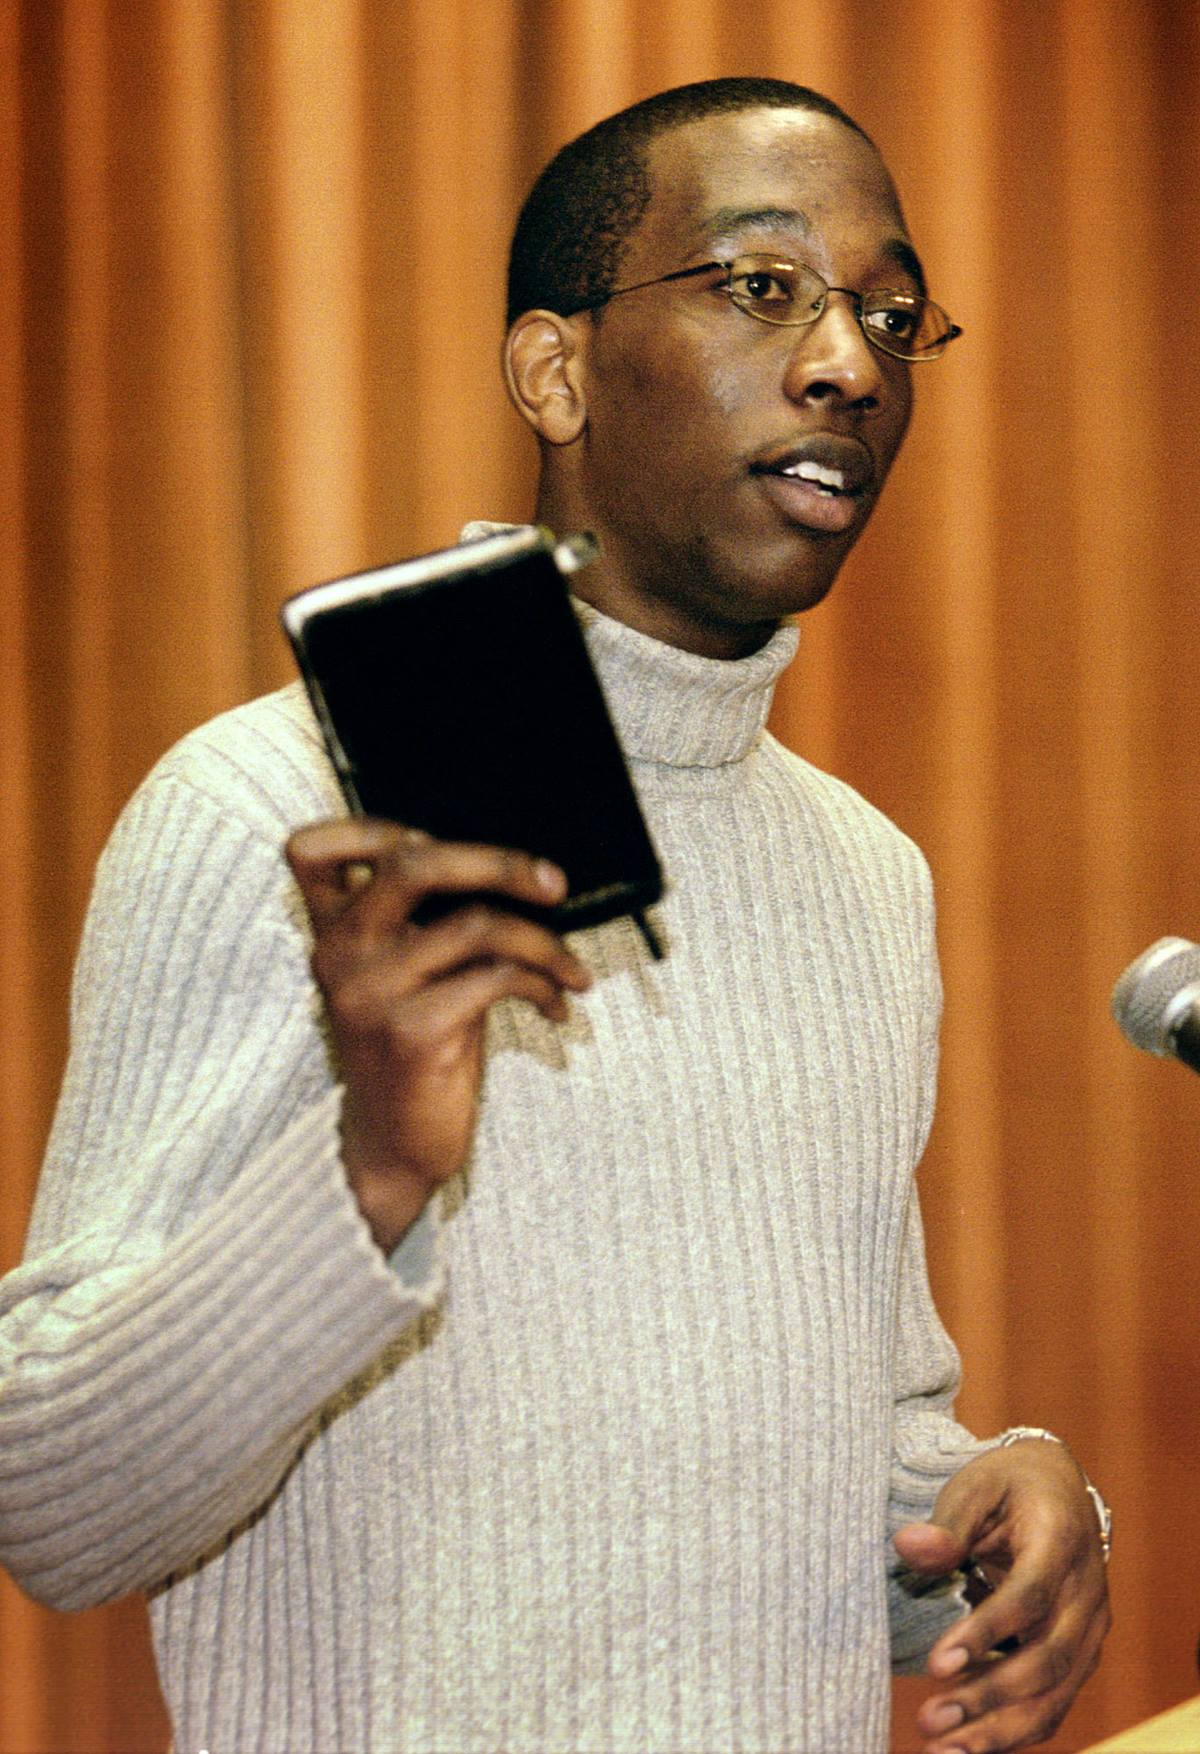 Jay Williams is an advocate for human rights in Sudan. UMNS photo by Mike DuBose